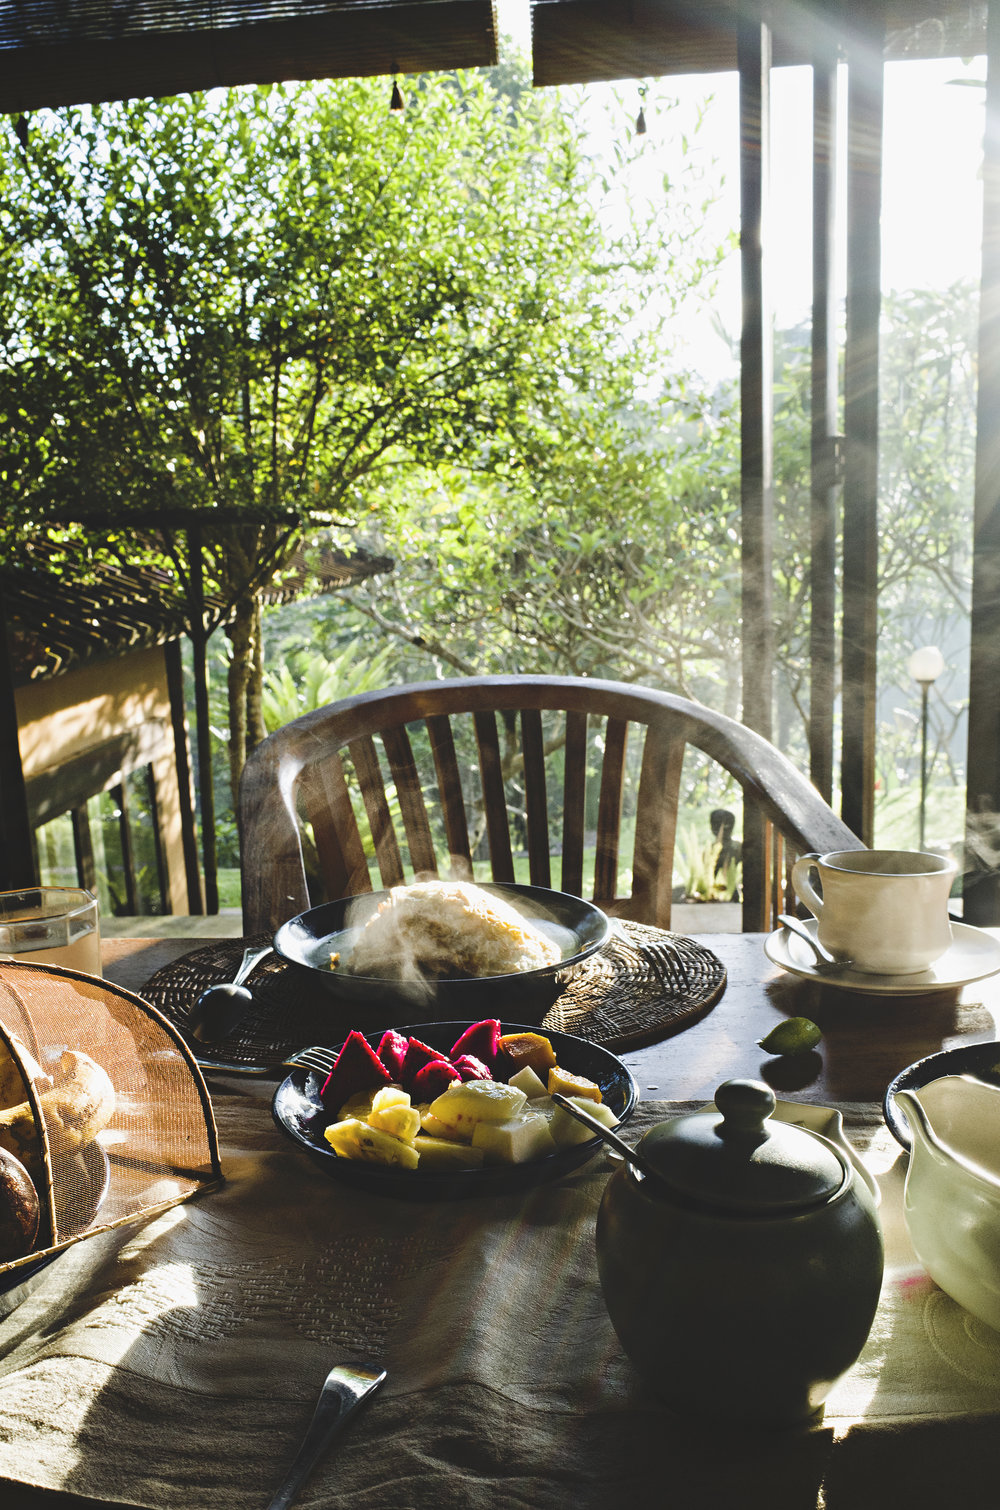 Breakfast at the Ubud villa.